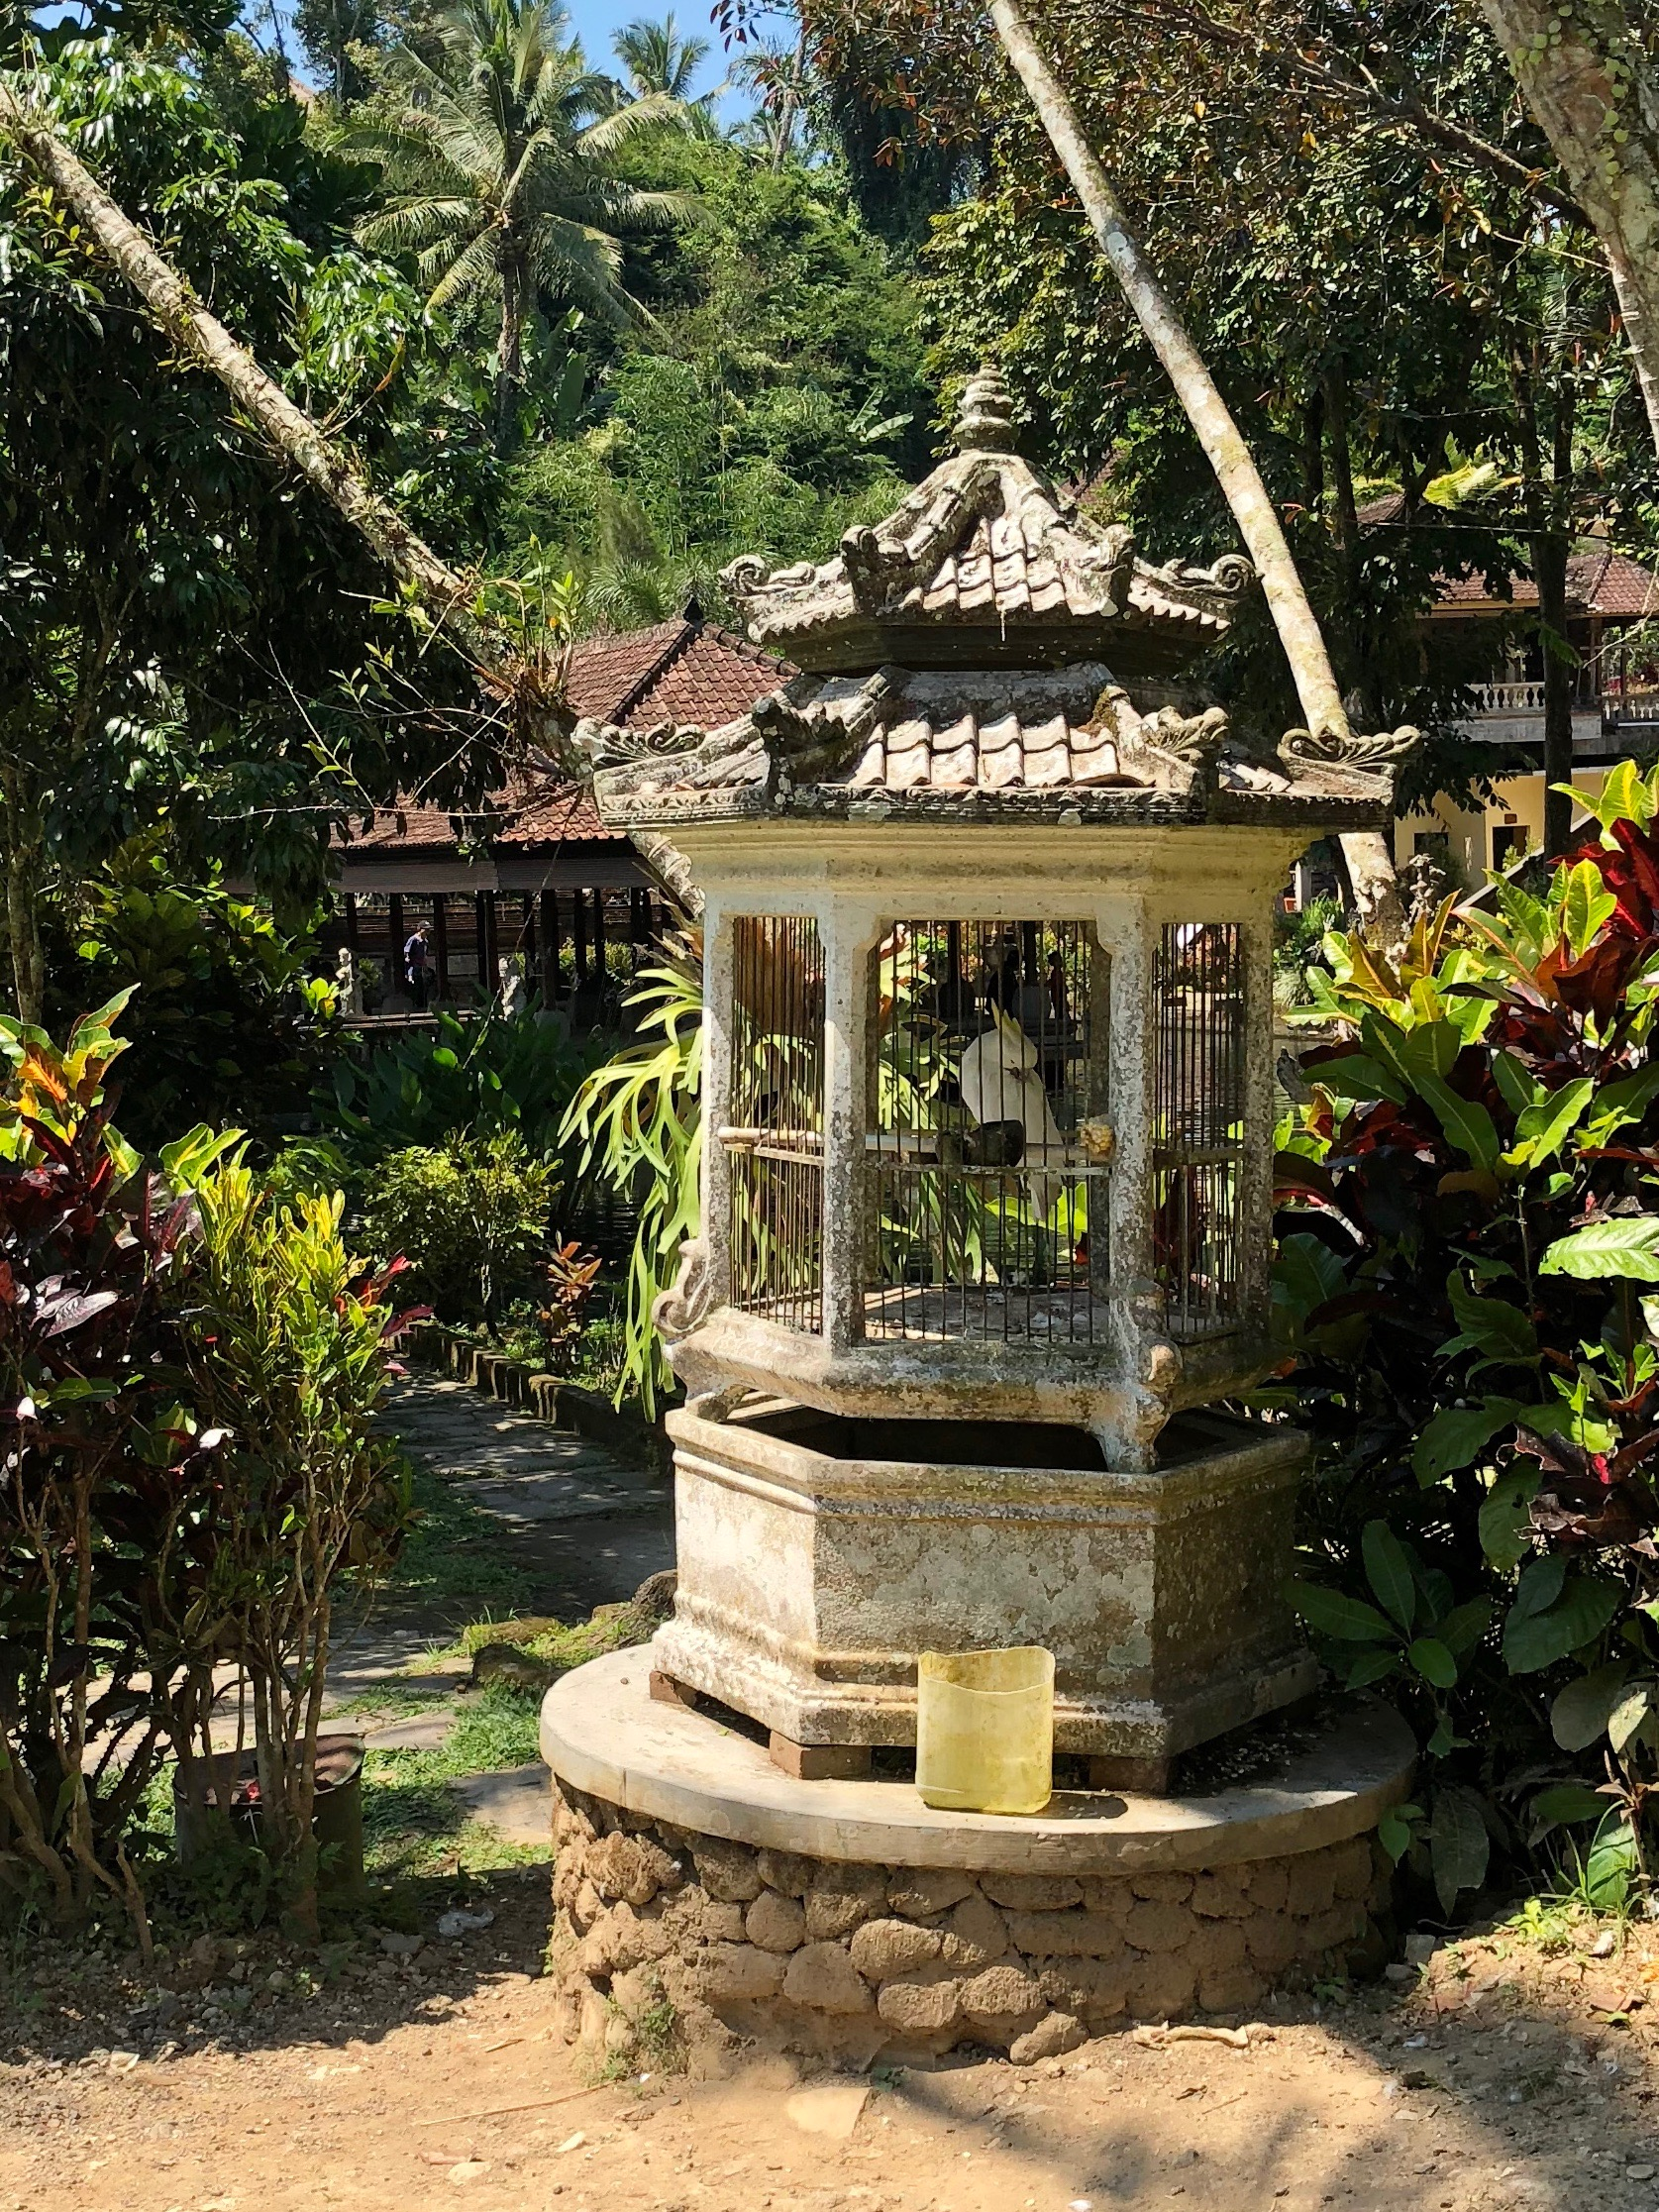 Pagoda-like birdcages line the main pool